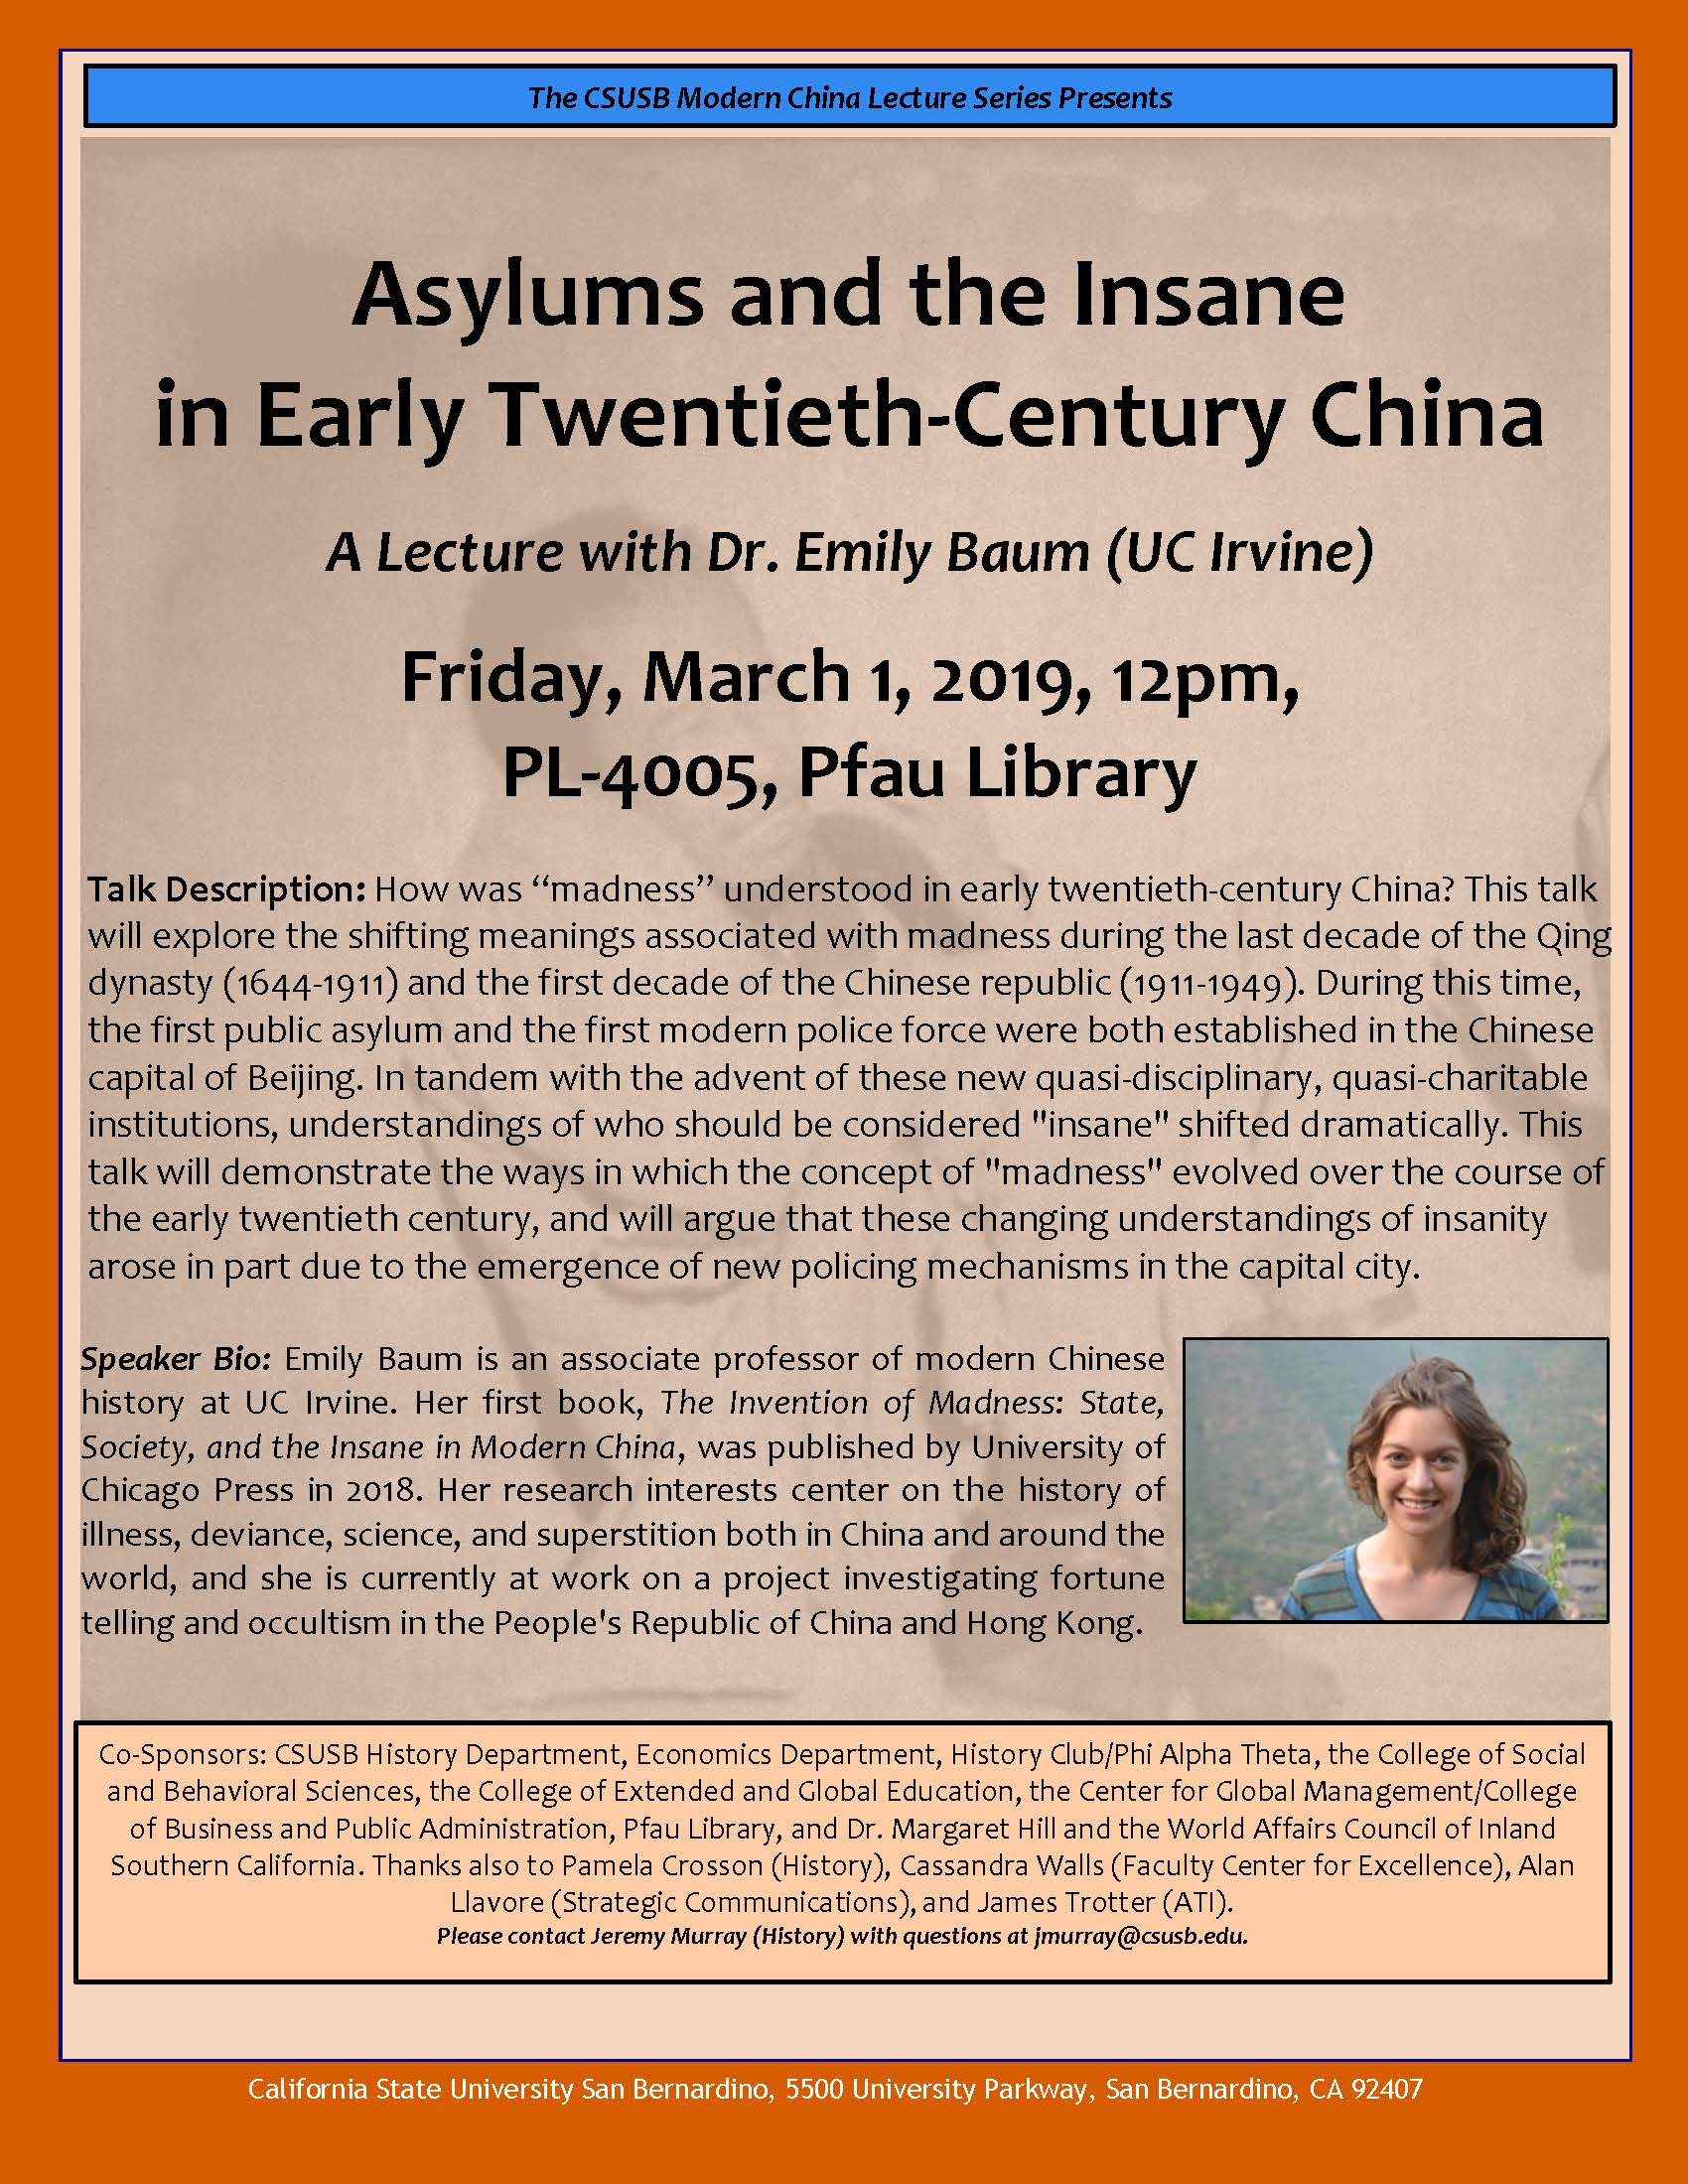 Modern China Lecture Series resumes March 1 with presentation on mental health in early 20th century China